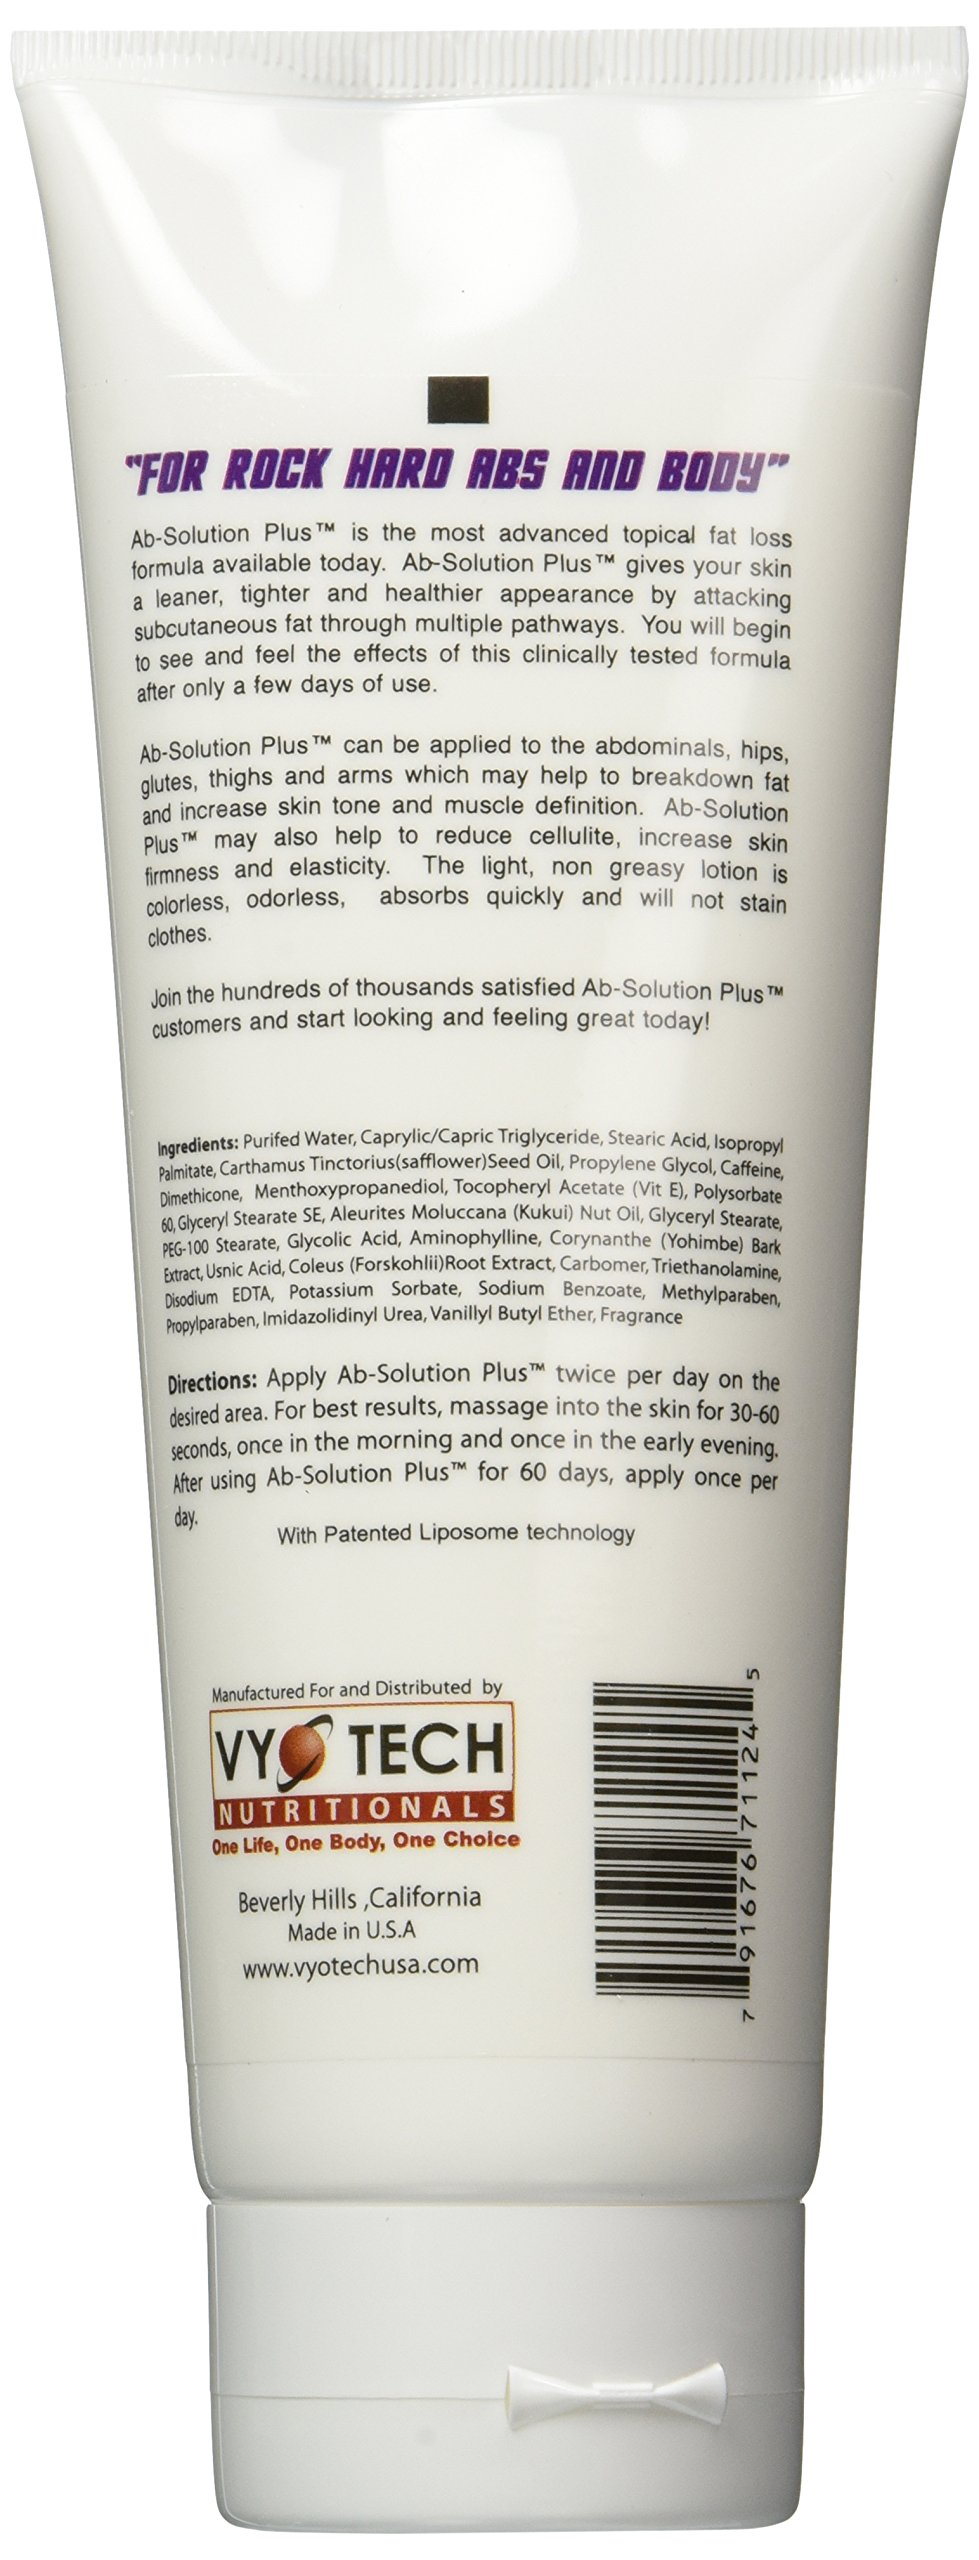 Ab-solution Plus, Vyotech, Topical Ab Solution Fat Loss Formula 8oz (3 Pack) by VyoTech (Image #2)